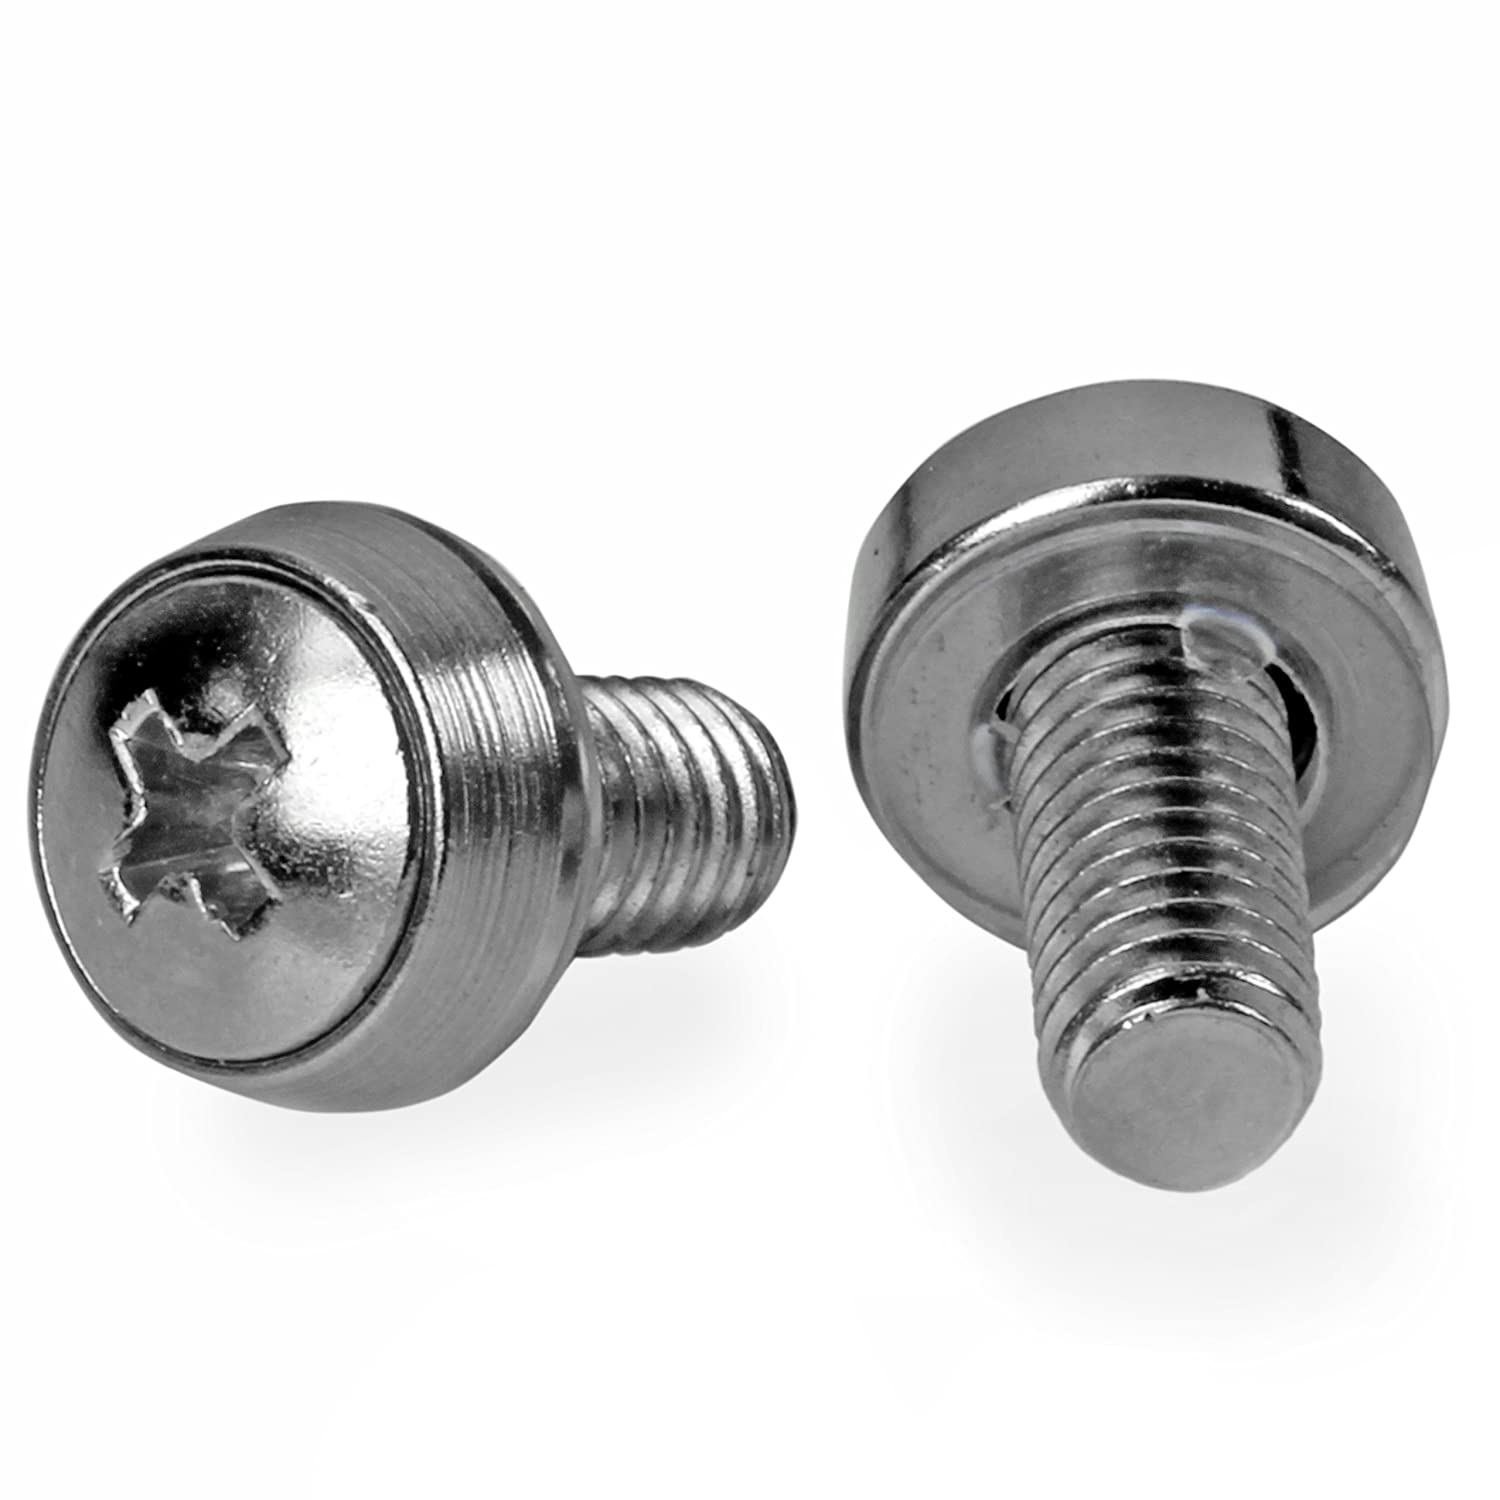 Amazon.com: StarTech.com 50 Pkg M6 Mounting Screws for Server Rack Cabinet: Electronics